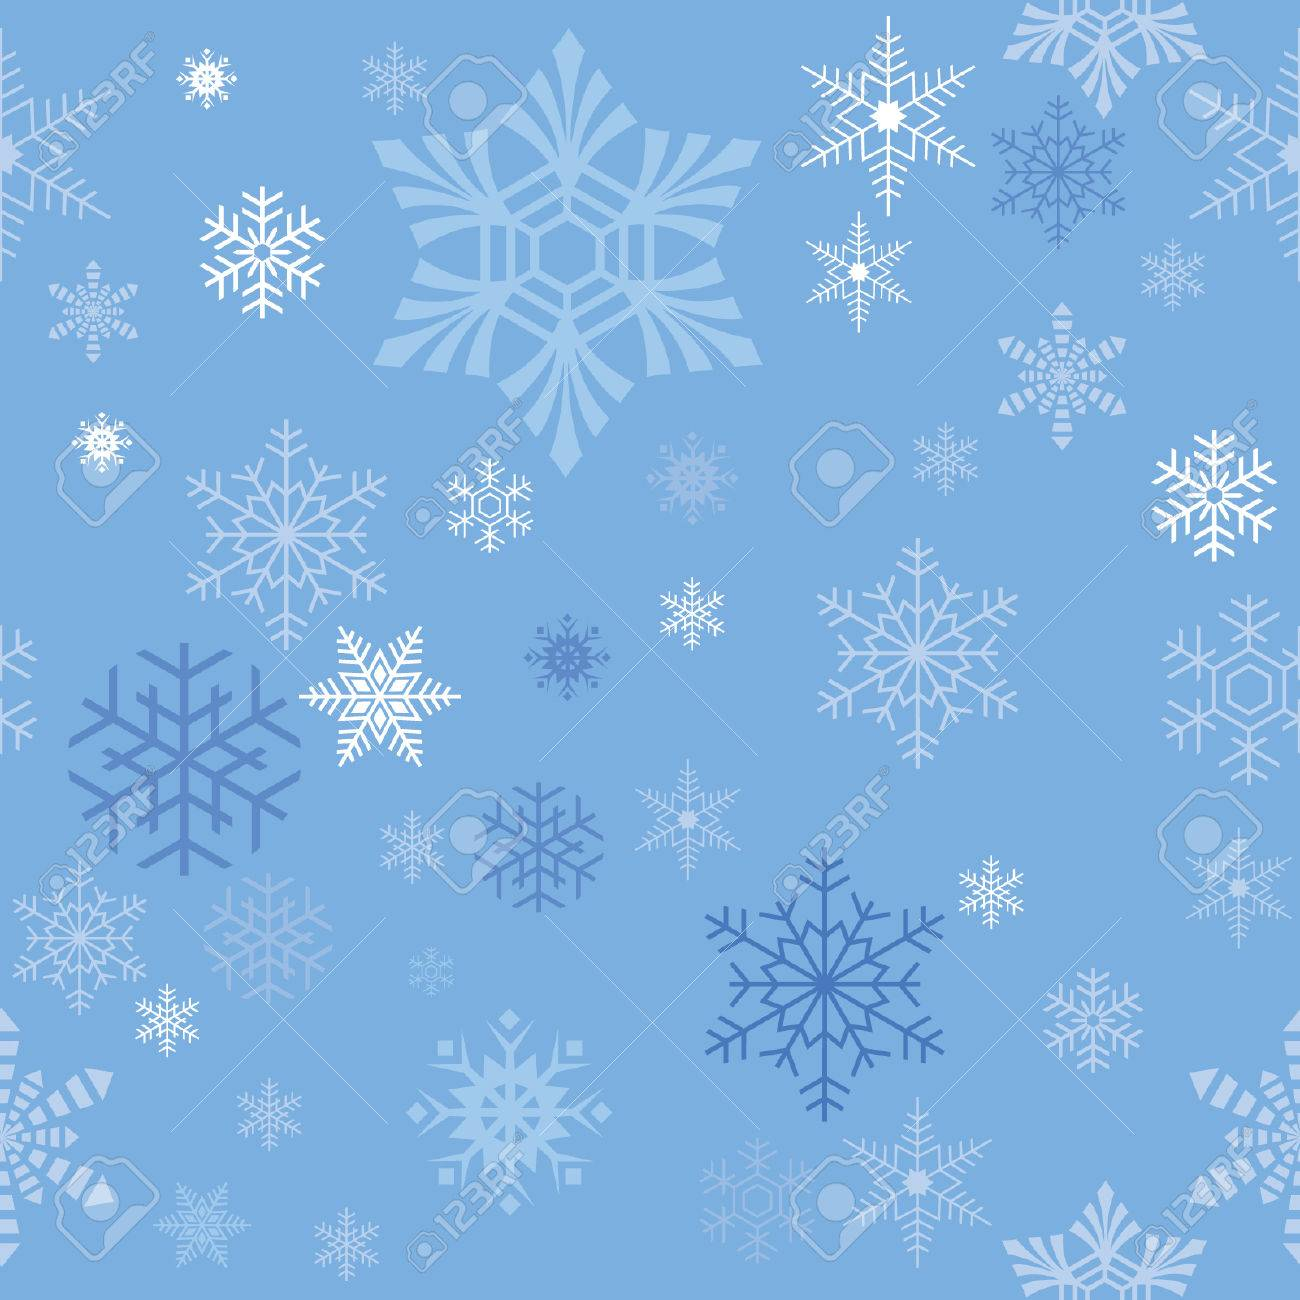 Seamless Festive Christmas Gift Wrapping Paper Pattern Texture Royalty Free Cliparts Vectors And Stock Illustration Image 33314998